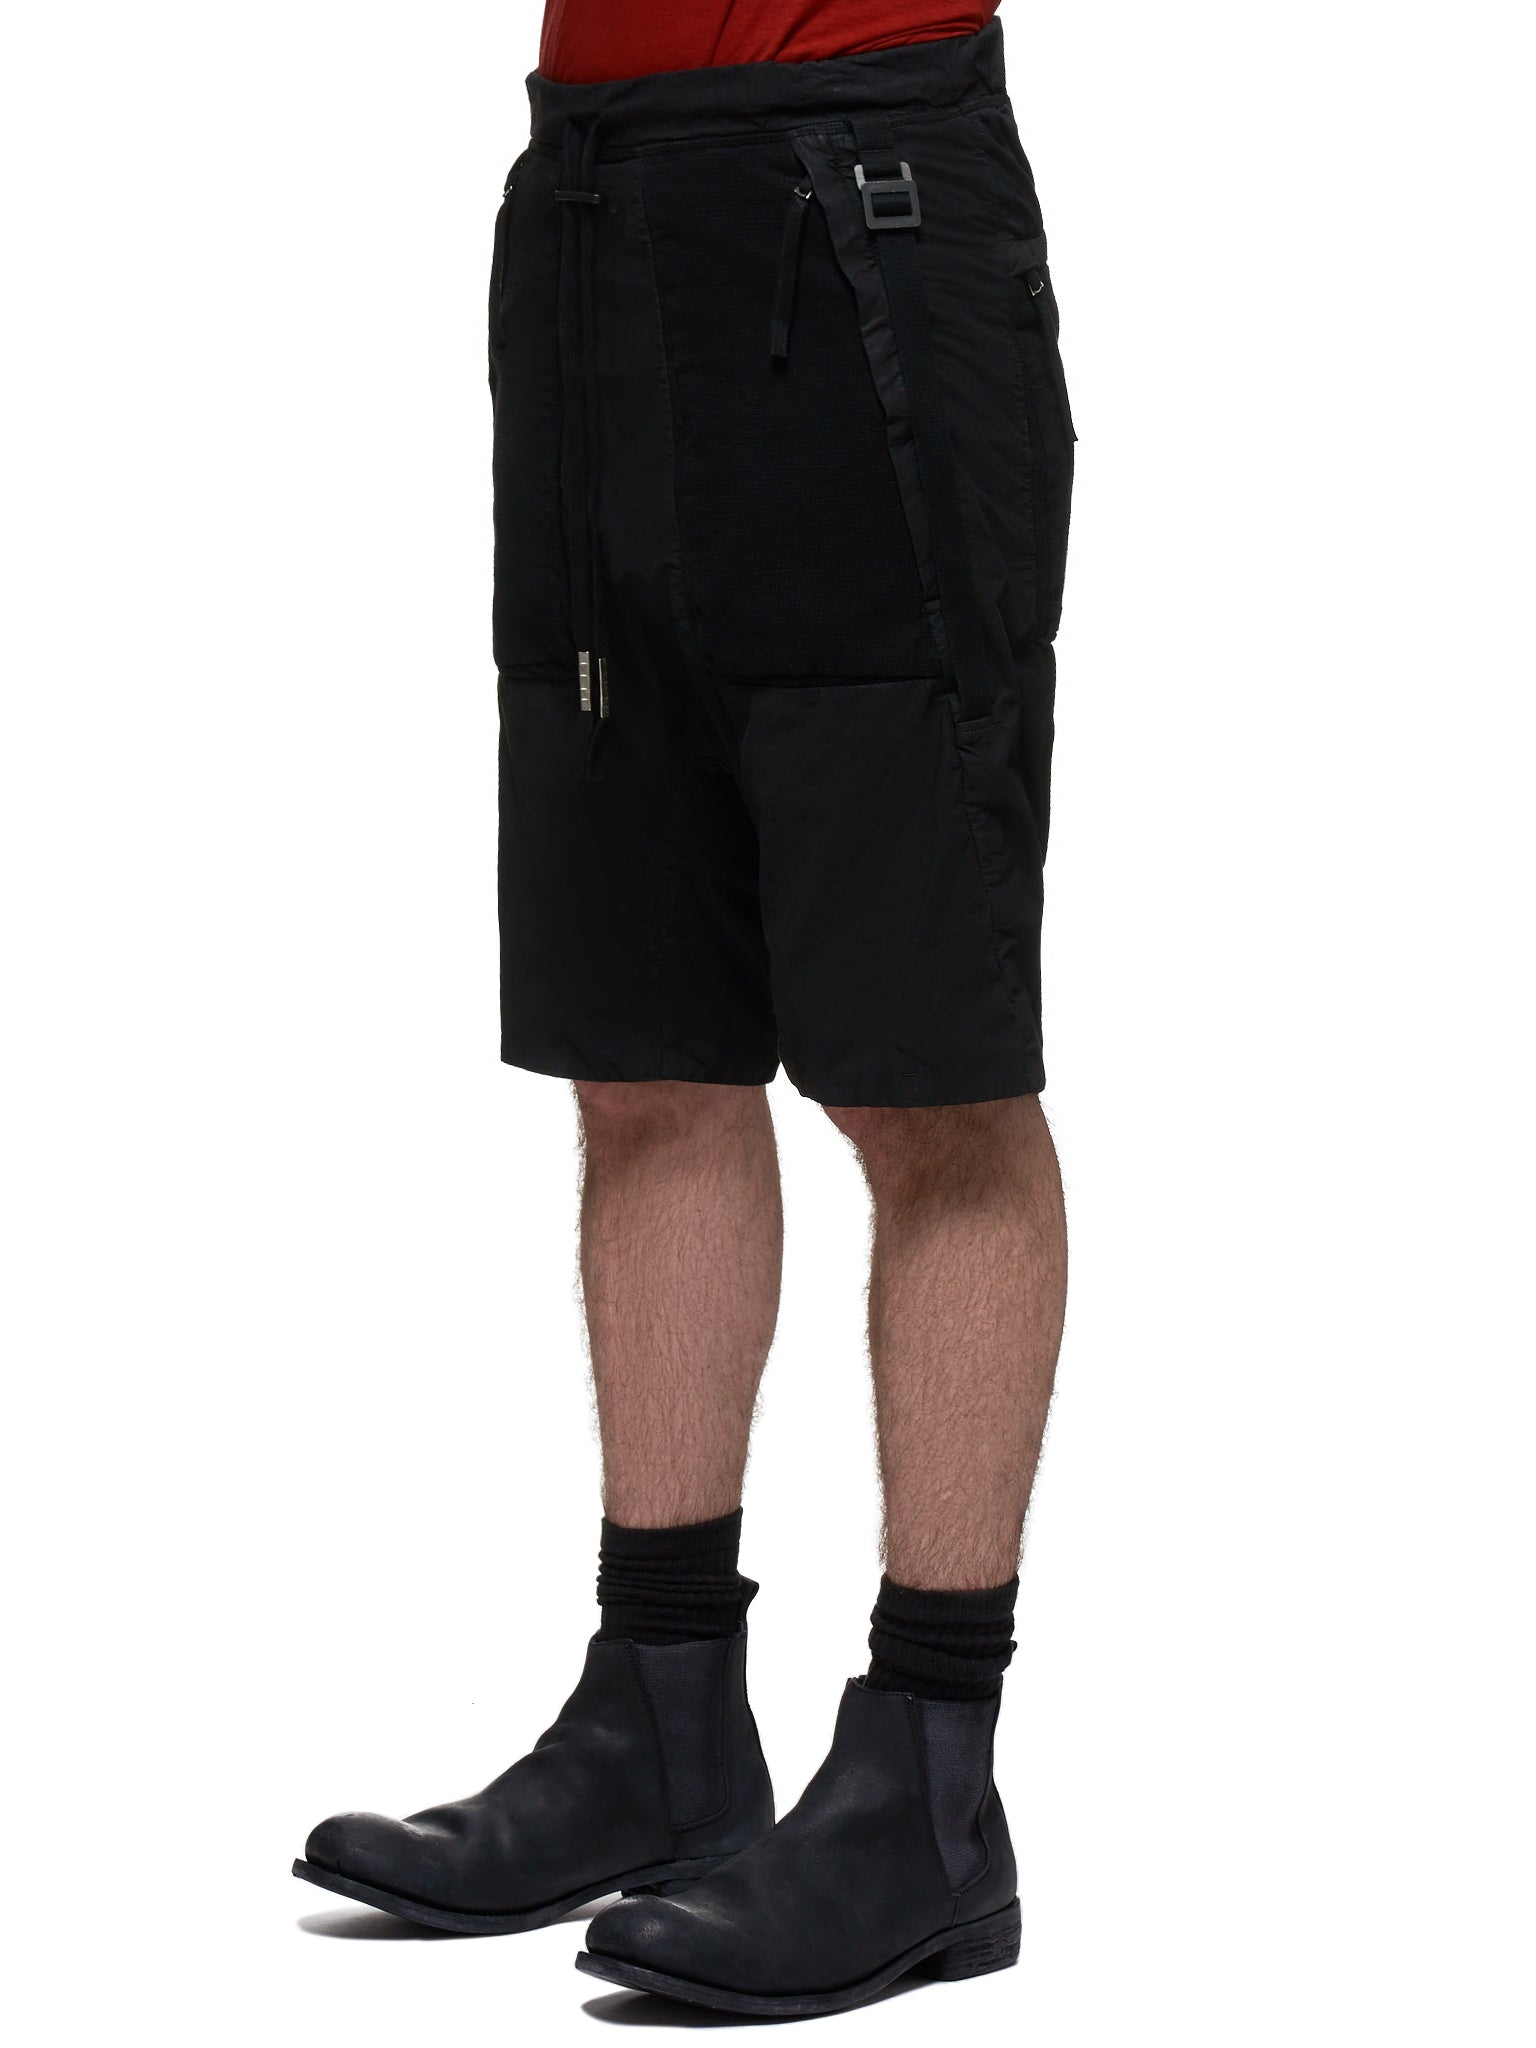 Boris Bidjan Saberi Shorts - Hlorenzo Side